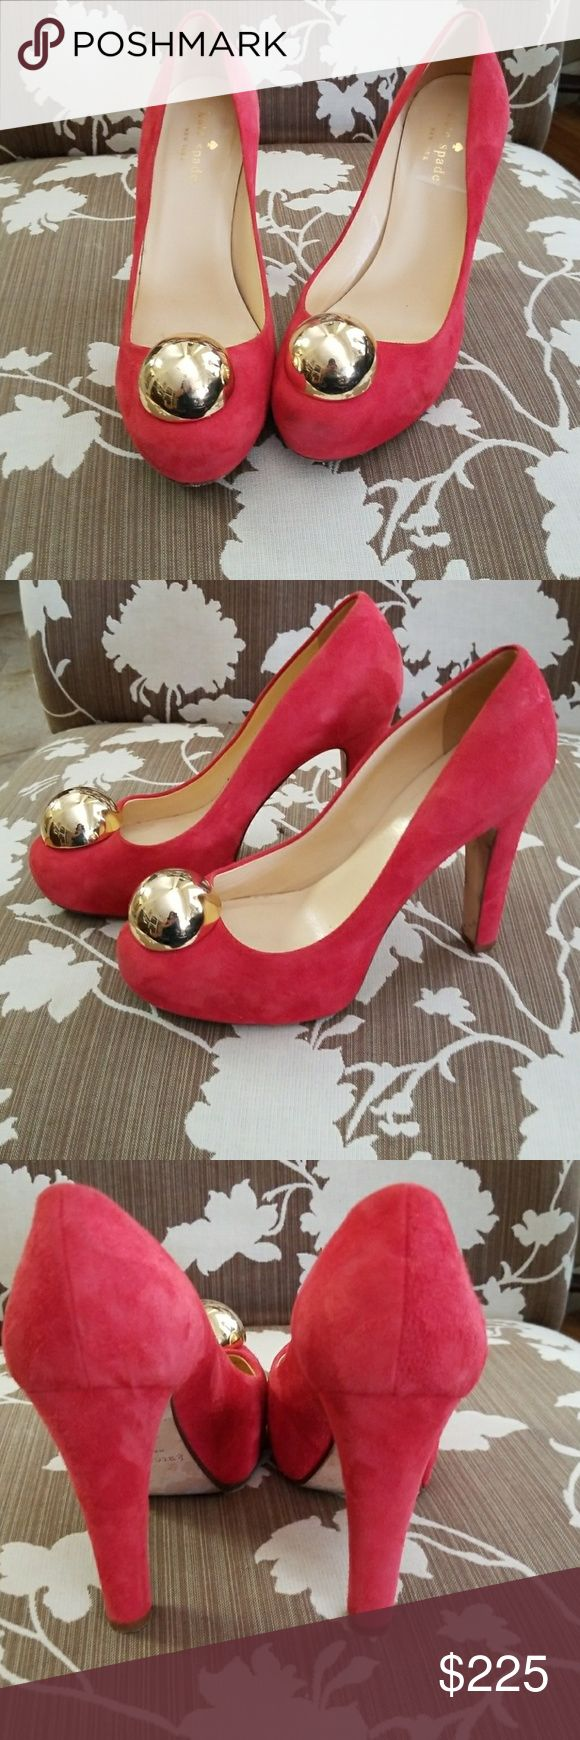 """KATE SPATE Suede Heels with Gold Ball Accent Kate Spade Heels with Ball Accent. Beautiful and gorgeous shoe sure to make a statement. Made in Italy. Heels measure 4.25""""   I kate spade Shoes Heels"""